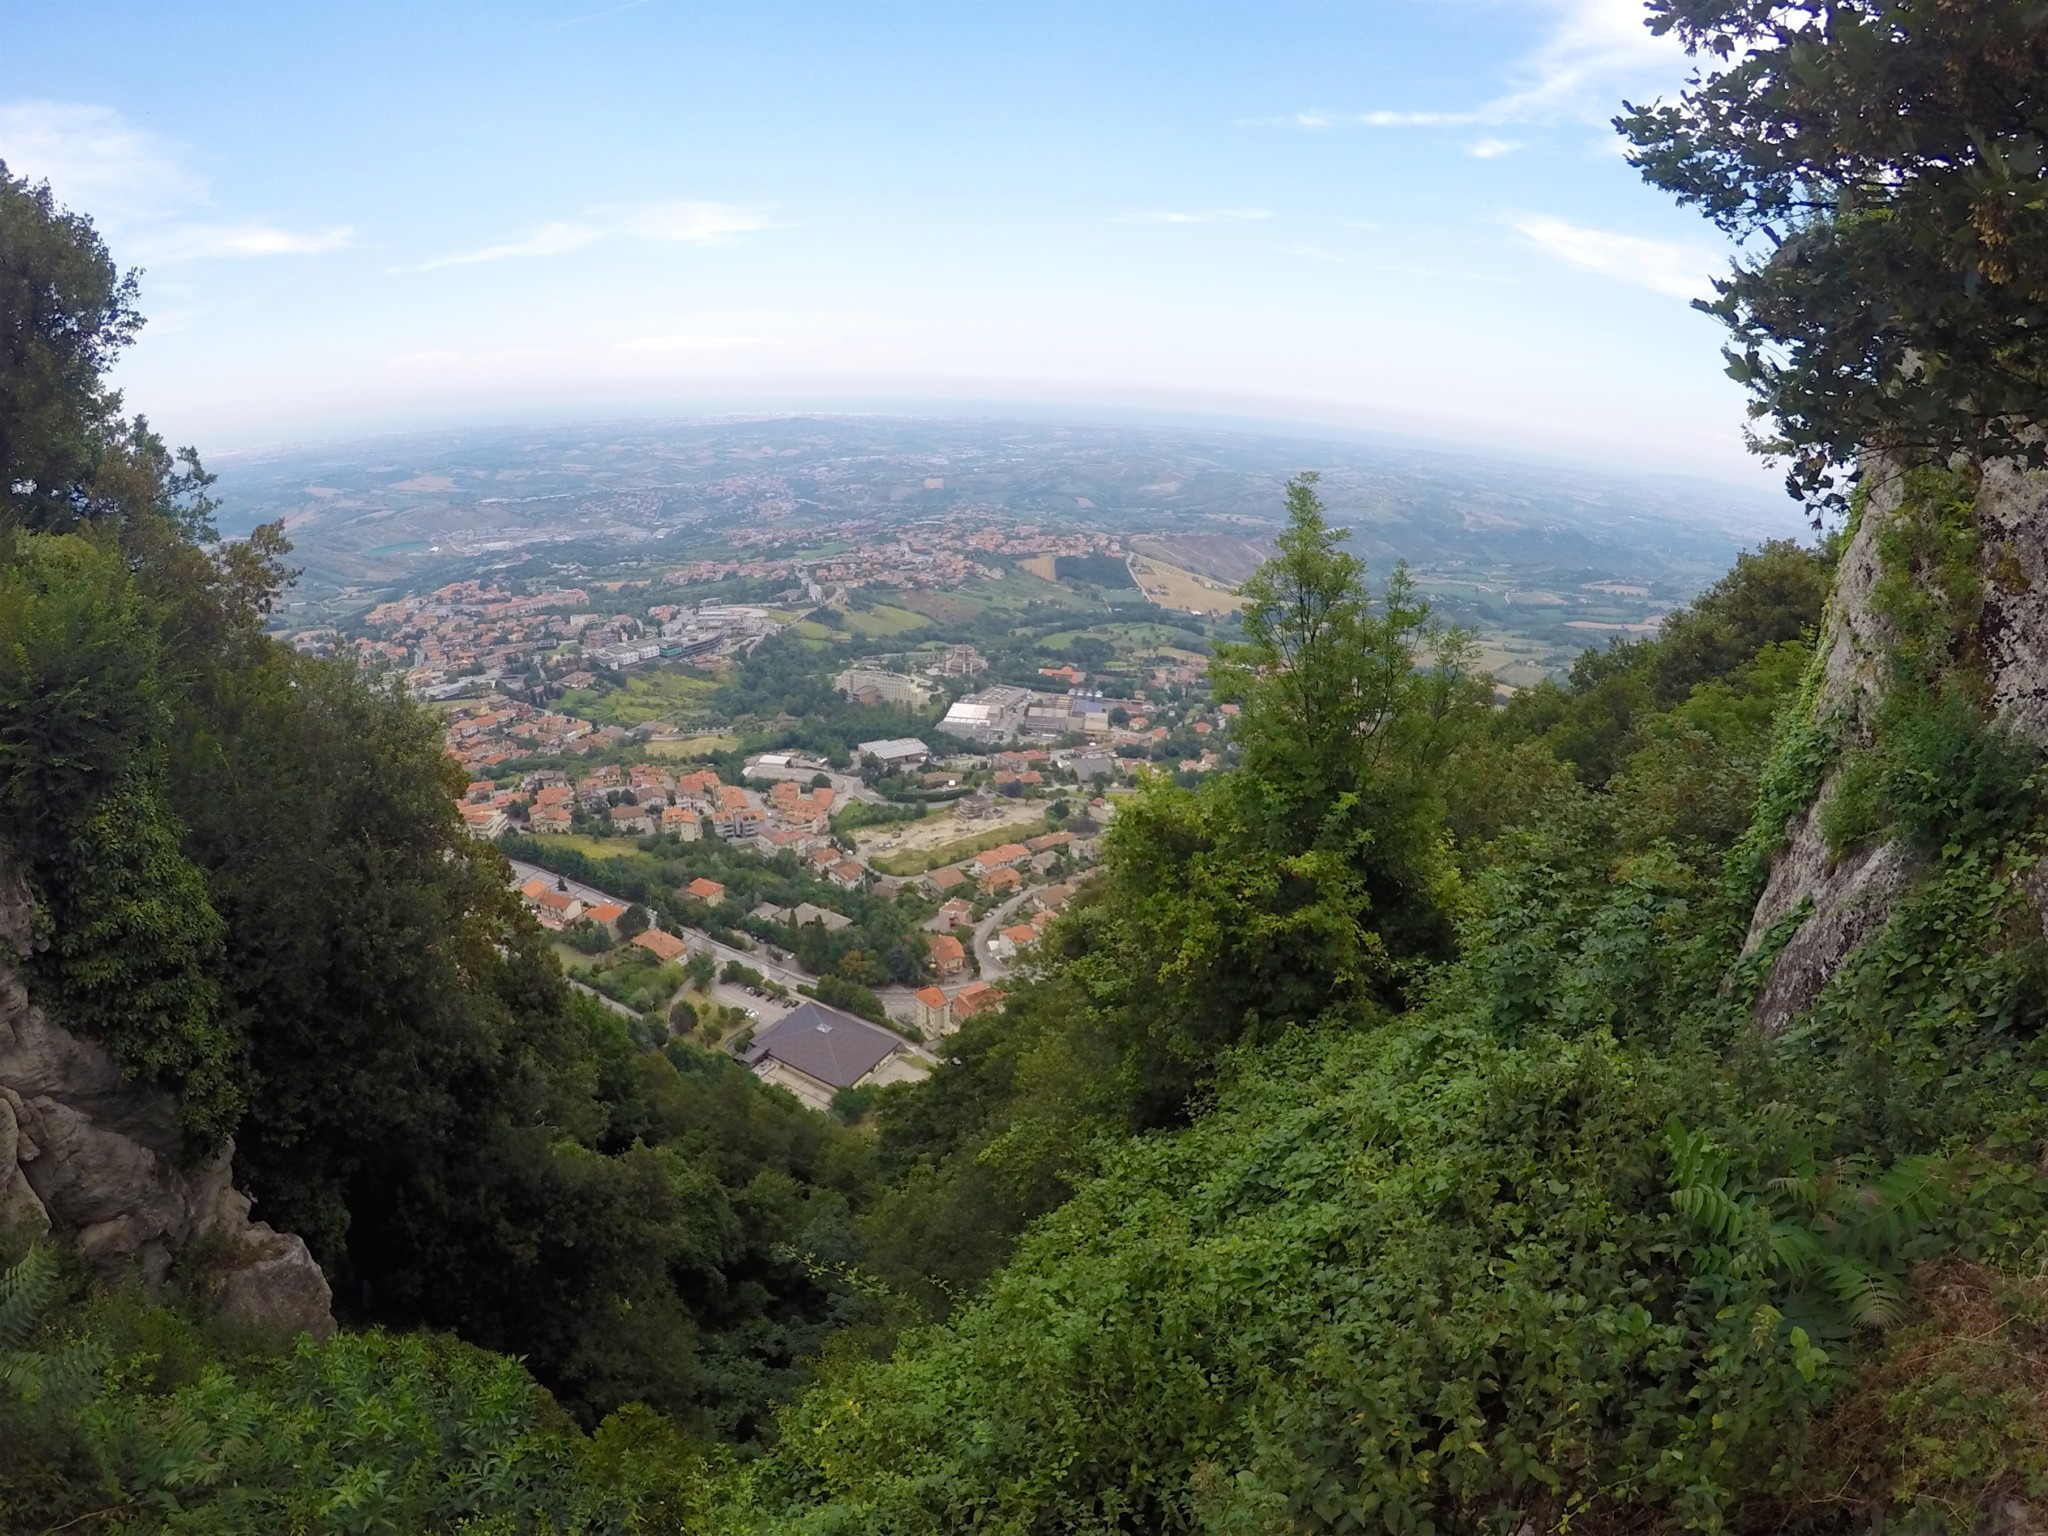 The Winding Journey to San Marino